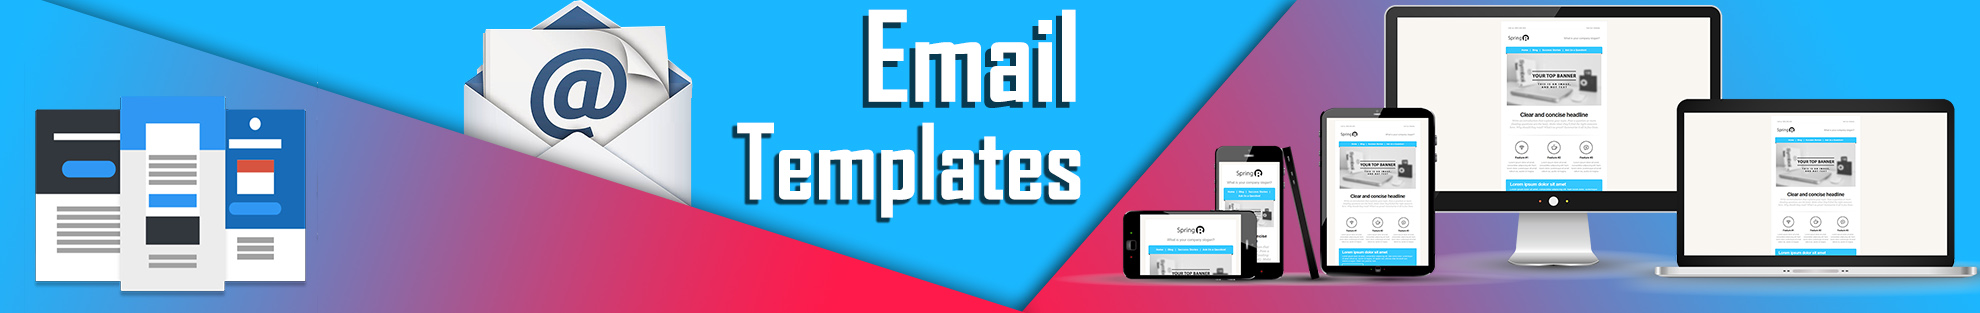 Creative Email Template Design | Email Template Design